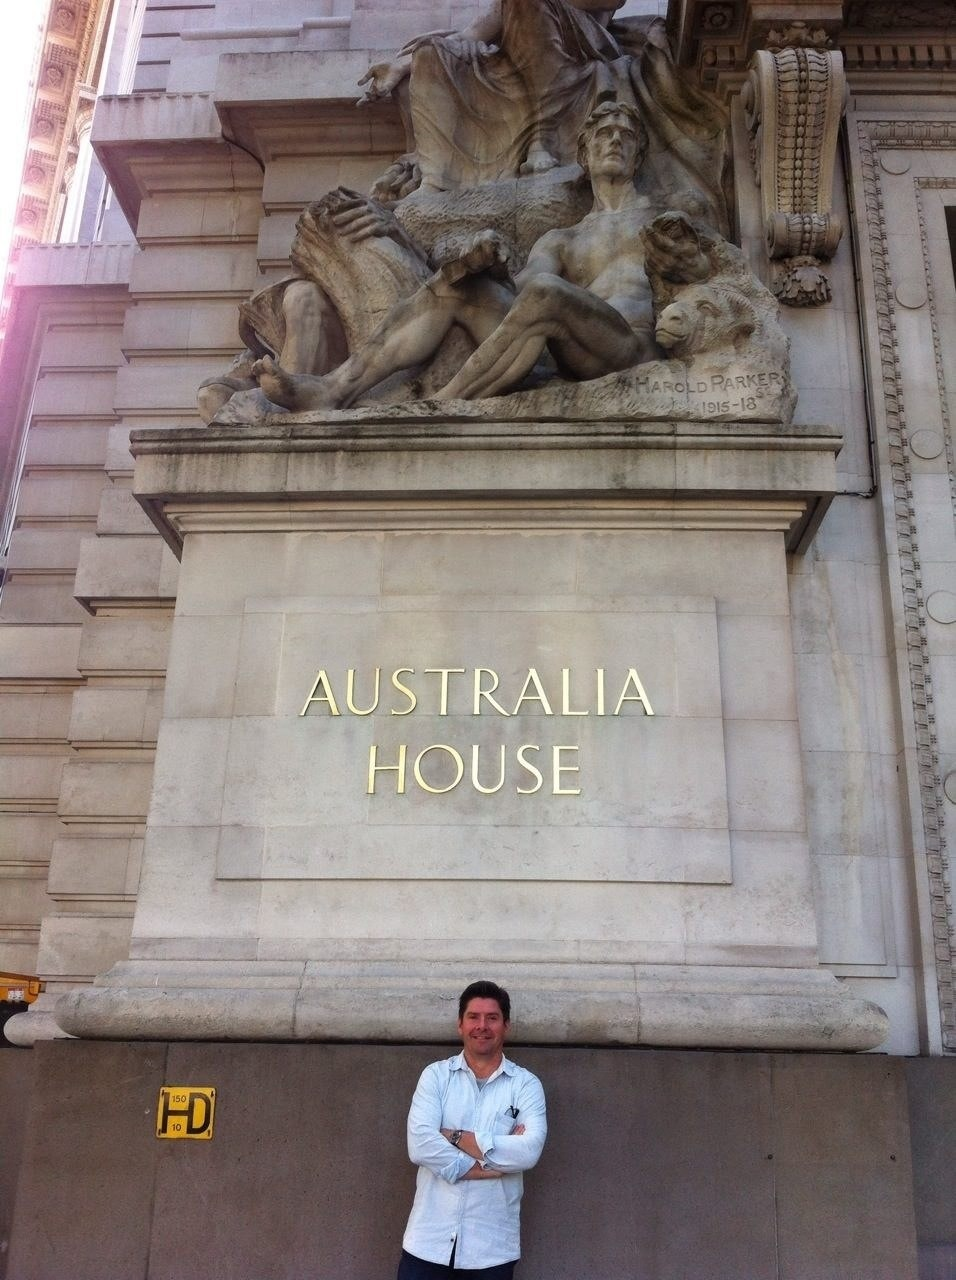 Outside Australia House, otherwise known as the Australian High Commission. This place became well known to me when I was first sent to London on attachment to the British Army!